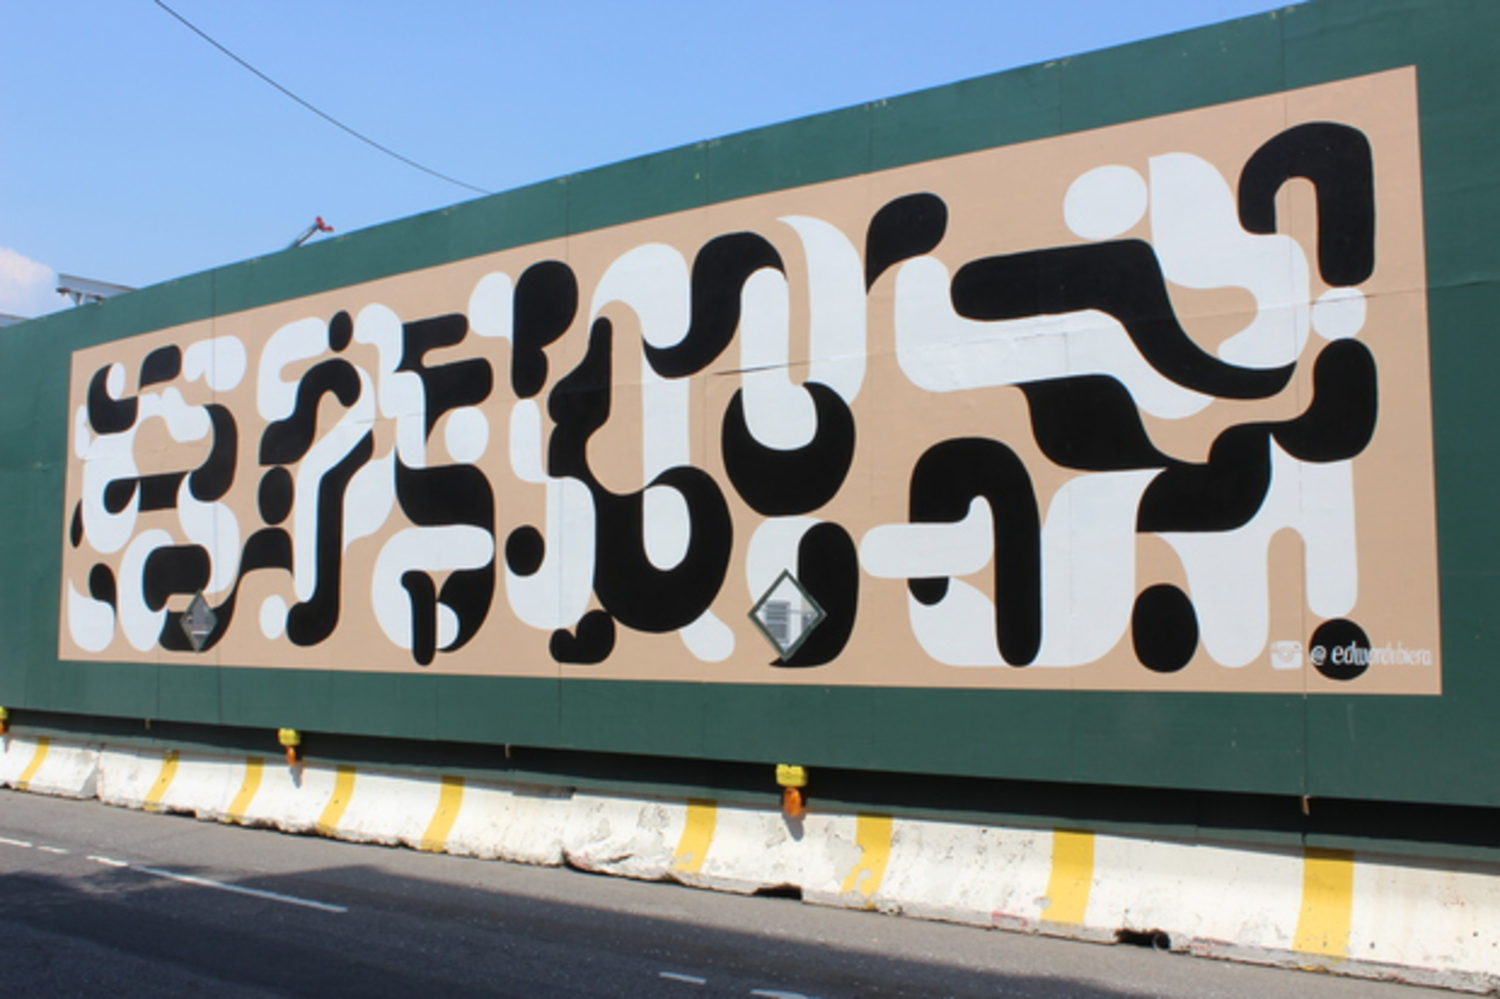 Edward Ubiera went with a tubular design in his mural.